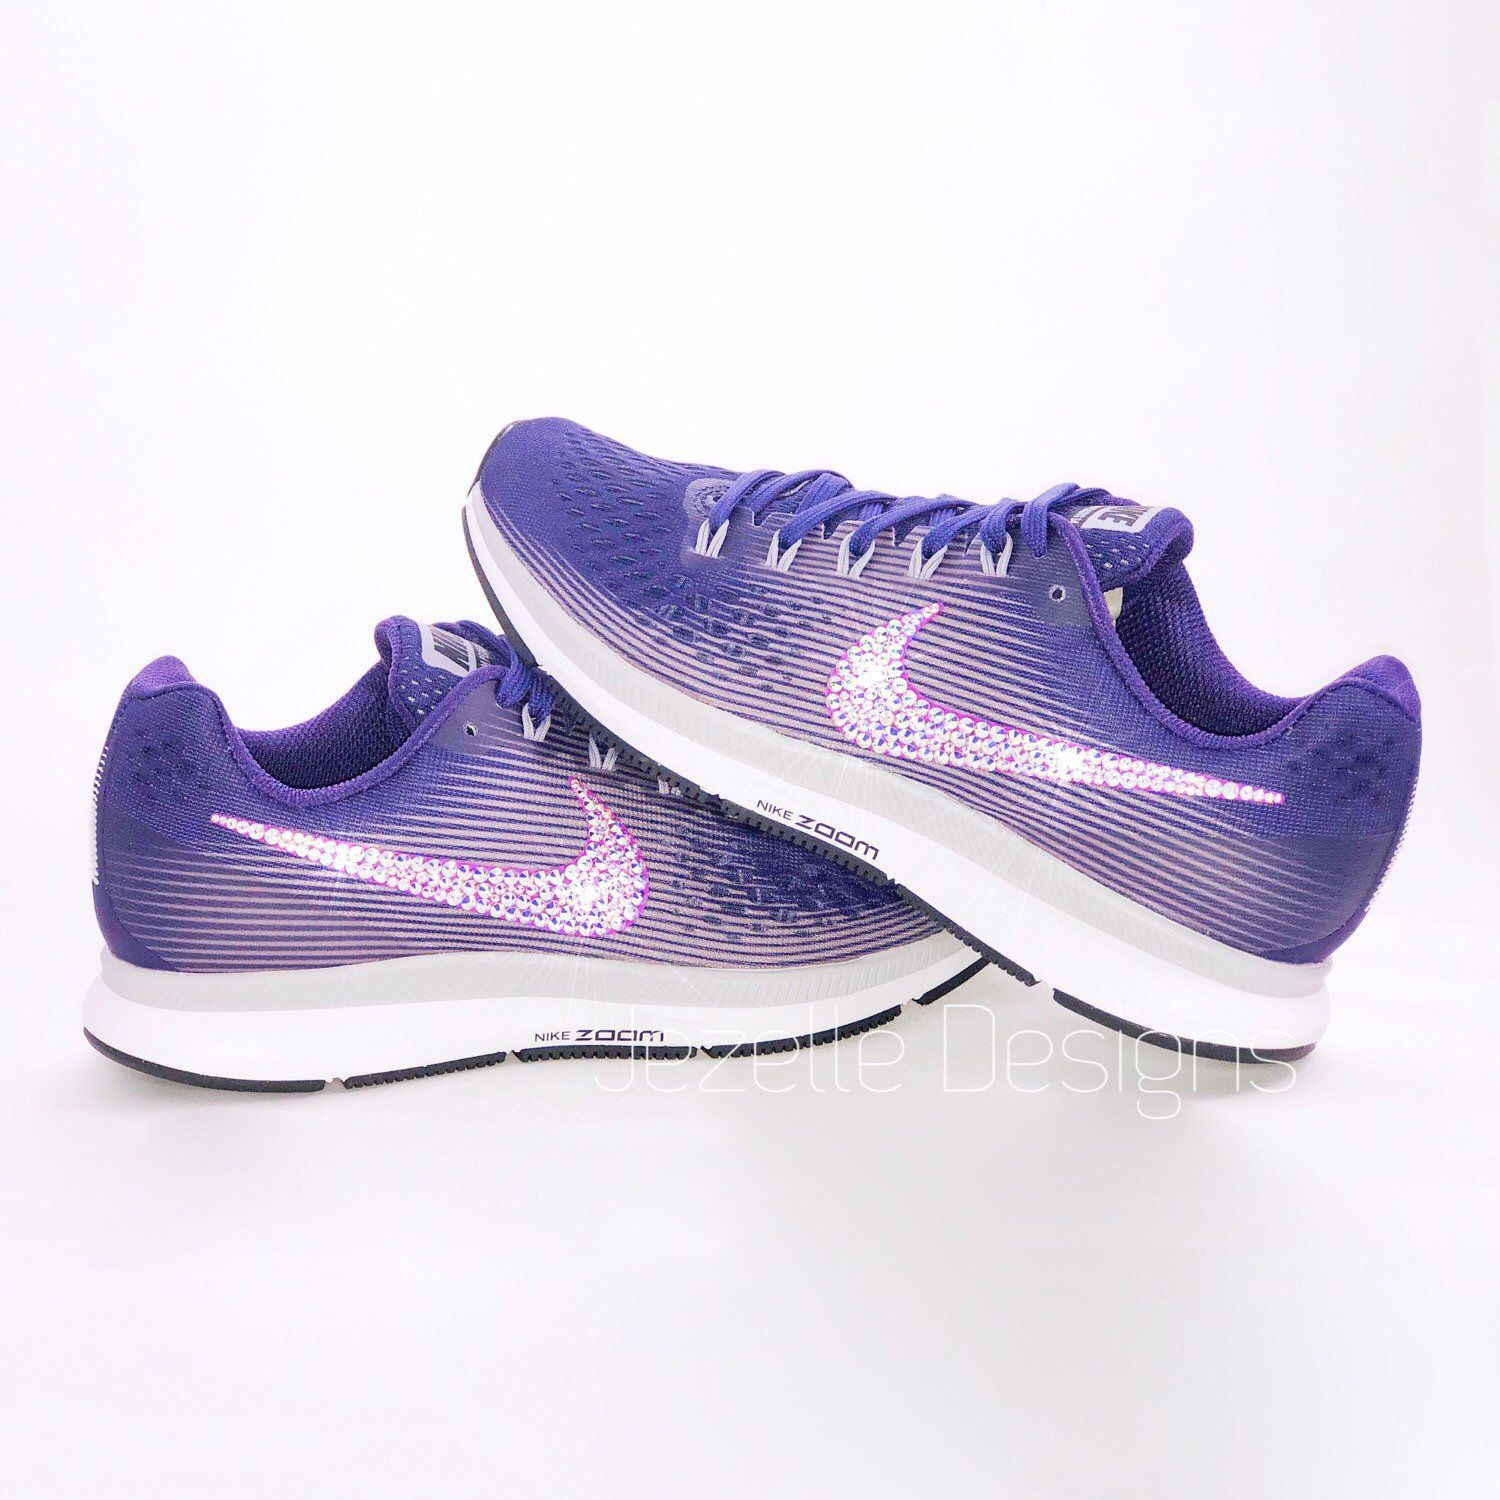 5706c8f65898 Workout Motivation 💎💜💎 Swarovski Nikes in Purple with AB Crystals - by  Jezelle Designs!  shoelove